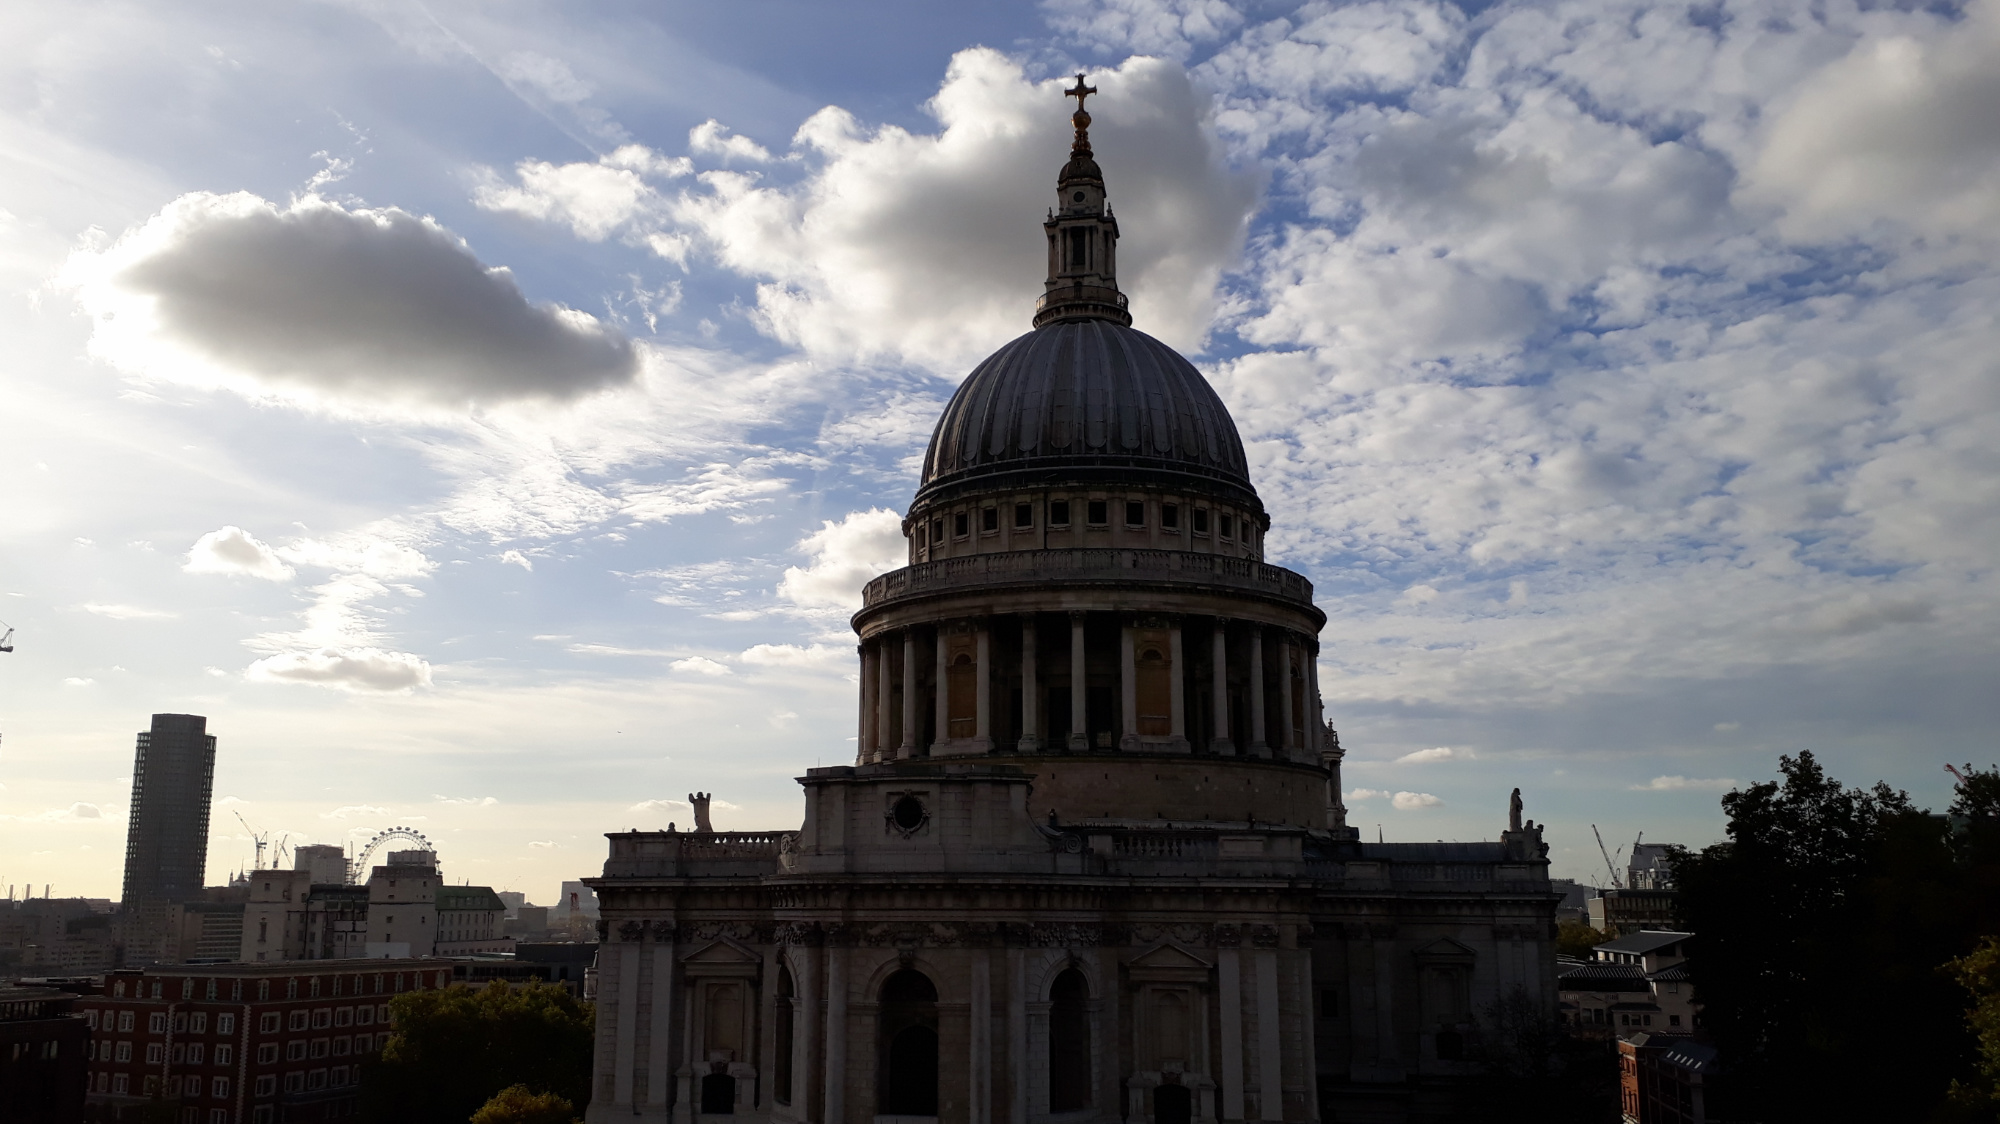 St Pauls Cathedral One New Change.jpg